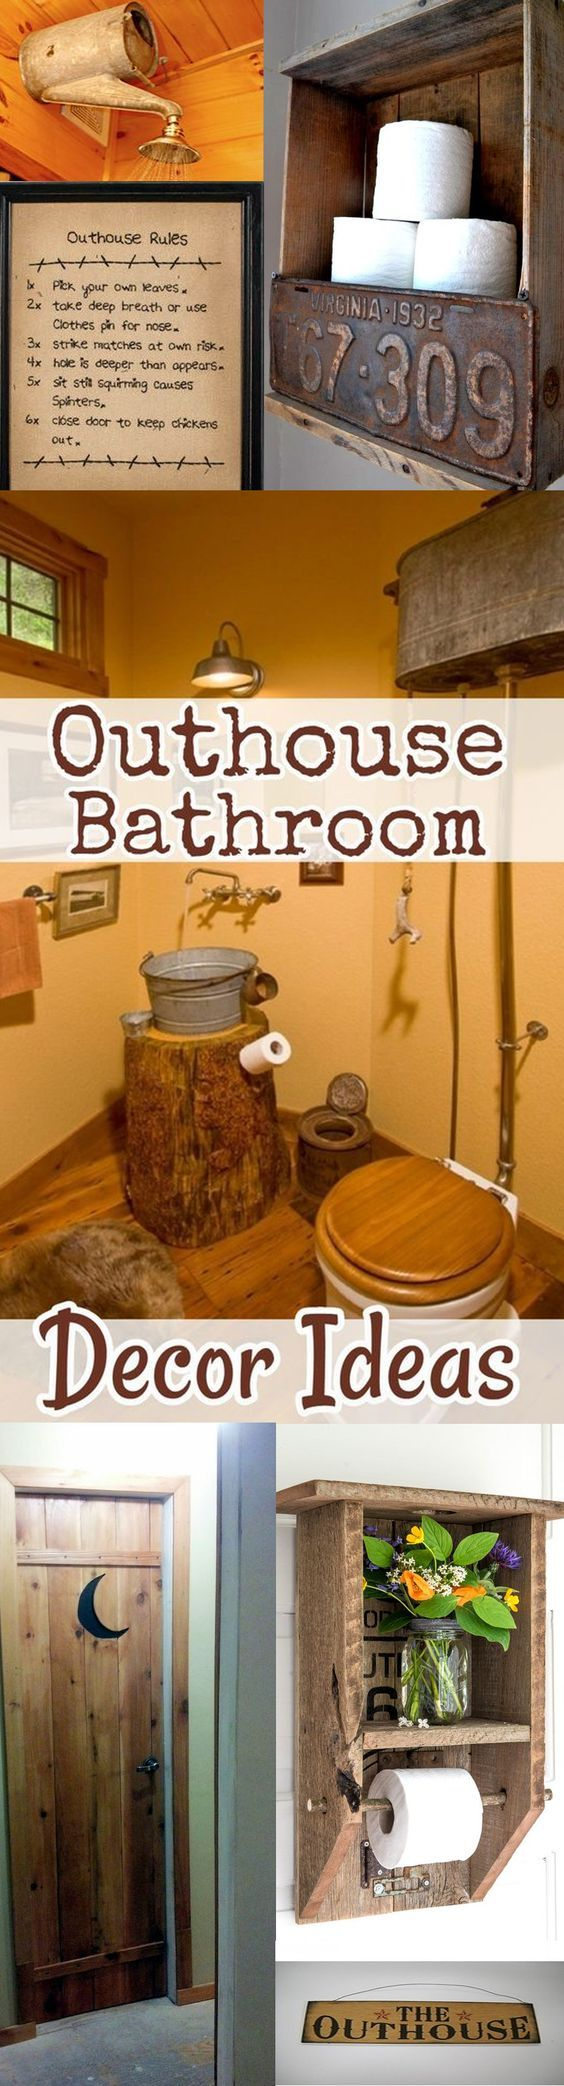 Country outhouse bathroom decor